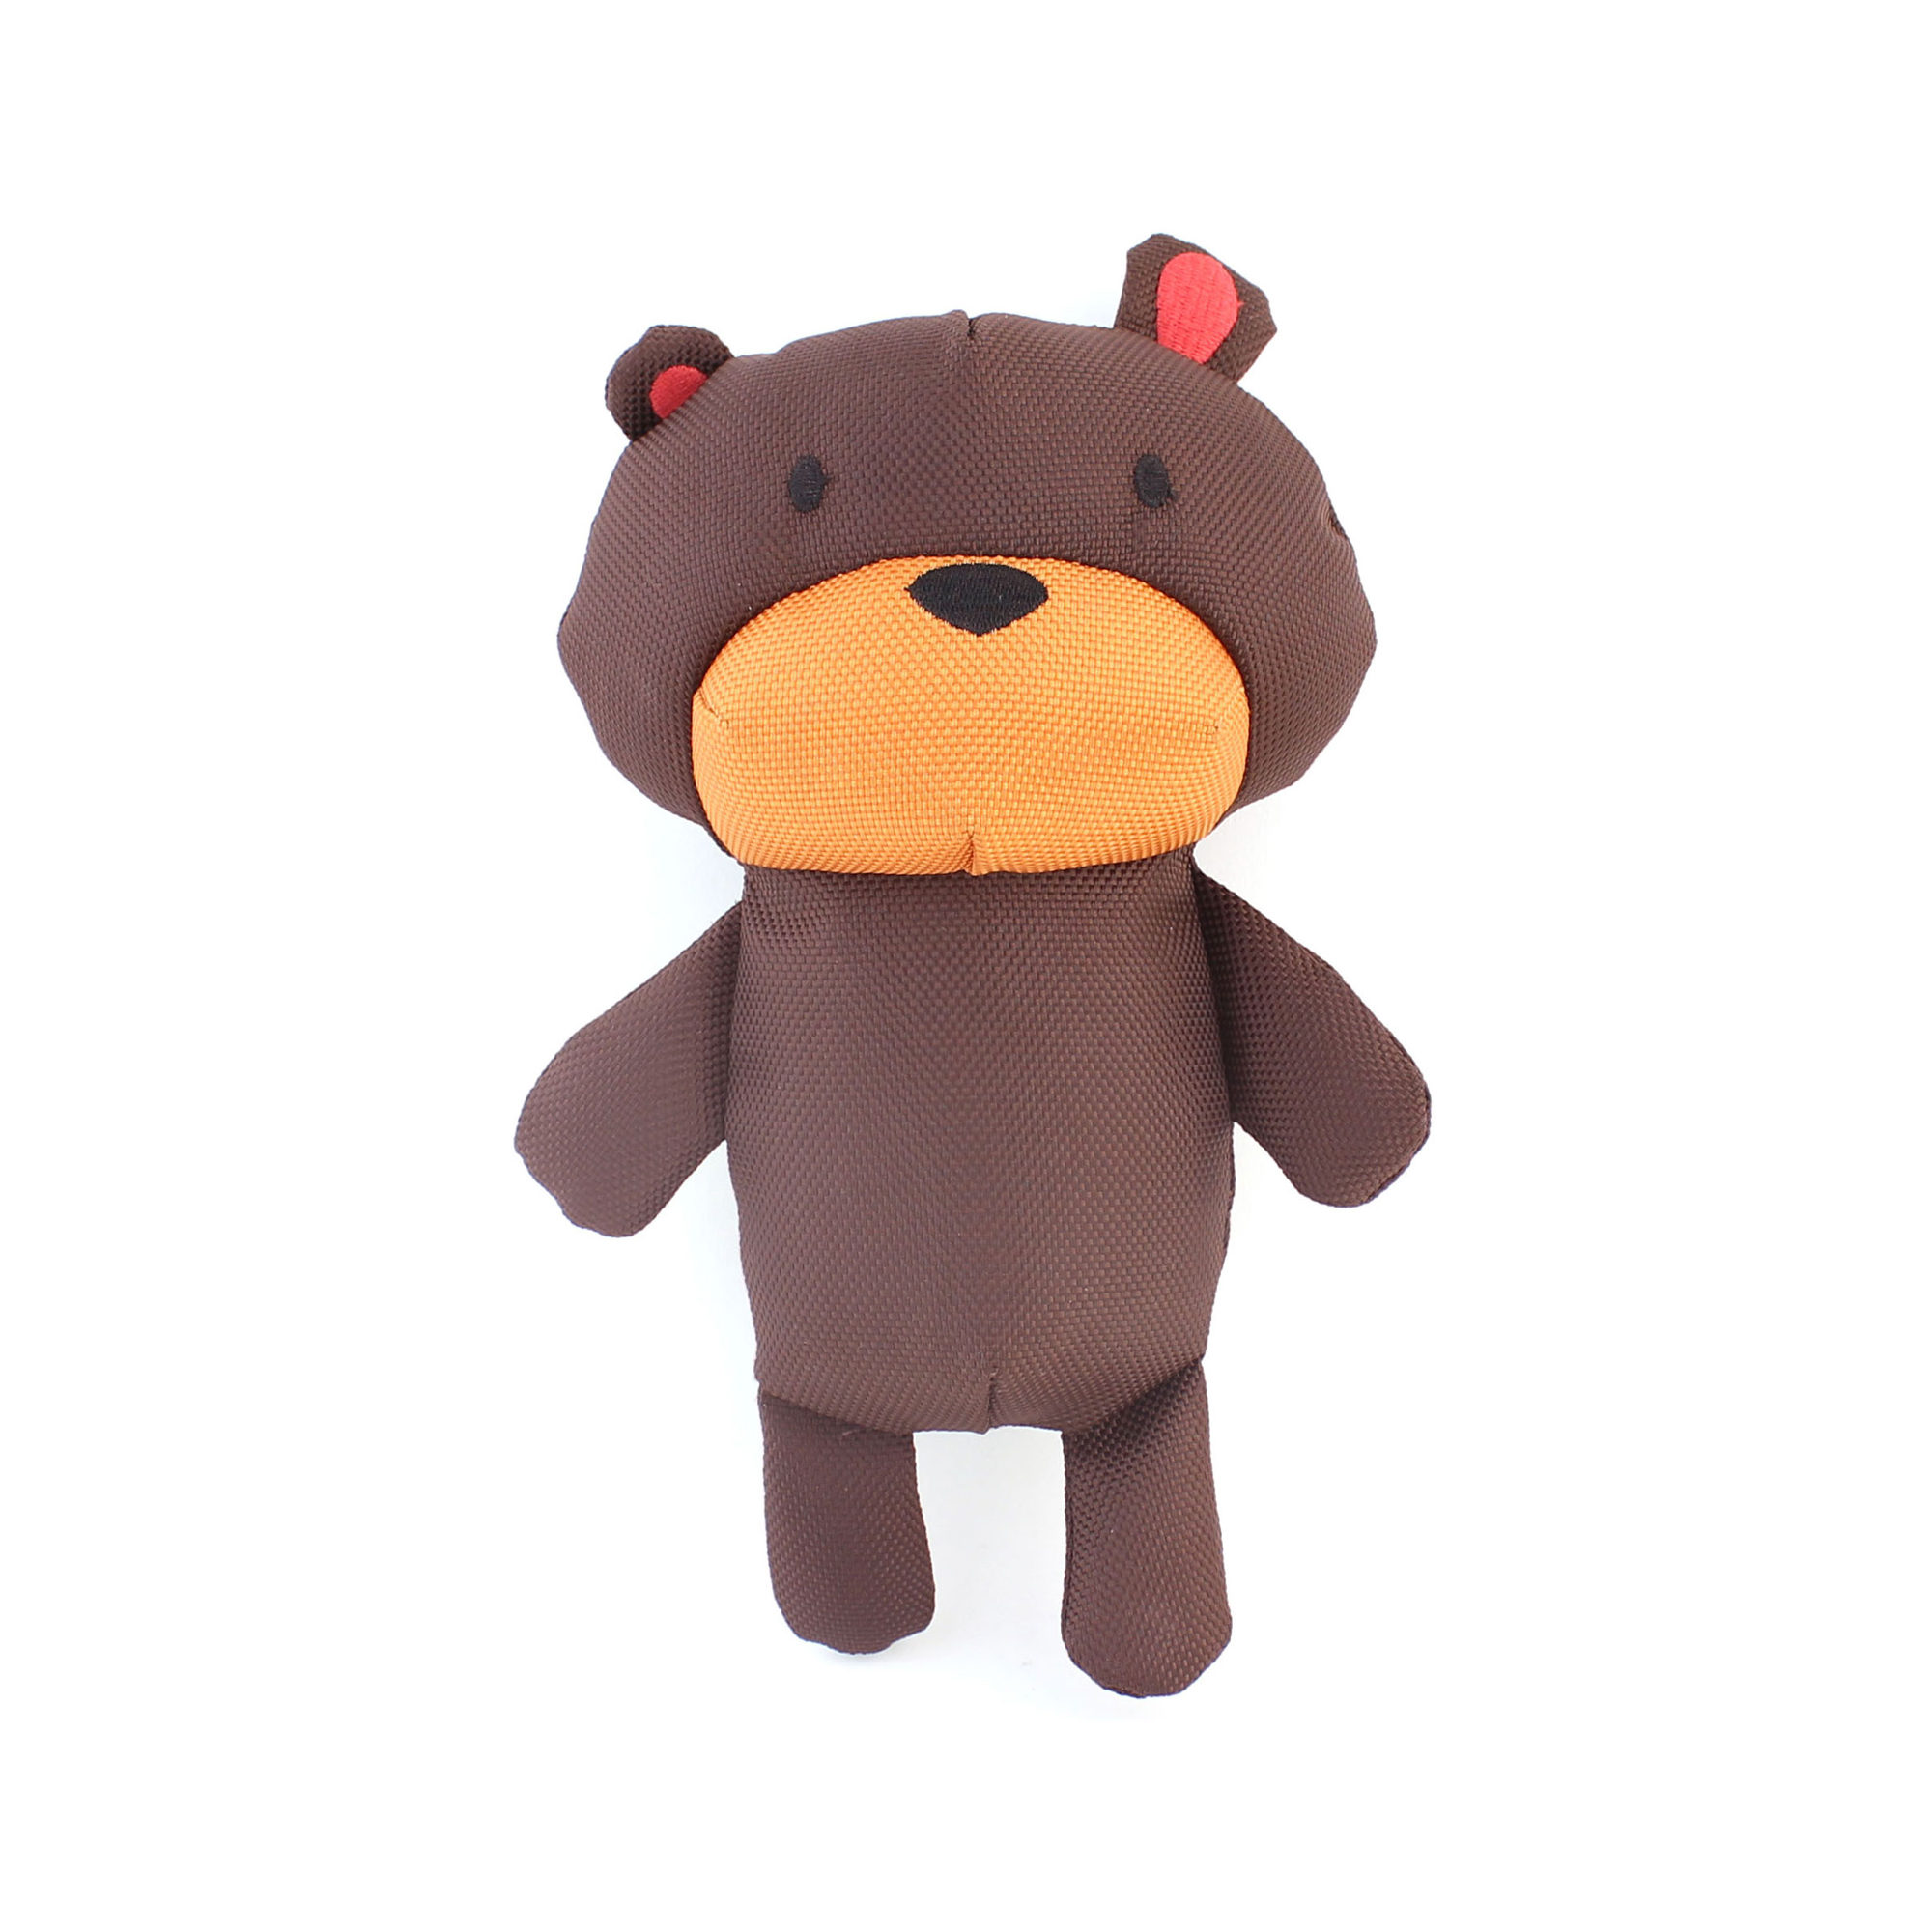 Beco Cuddly Soft Toy Toby the Teddy